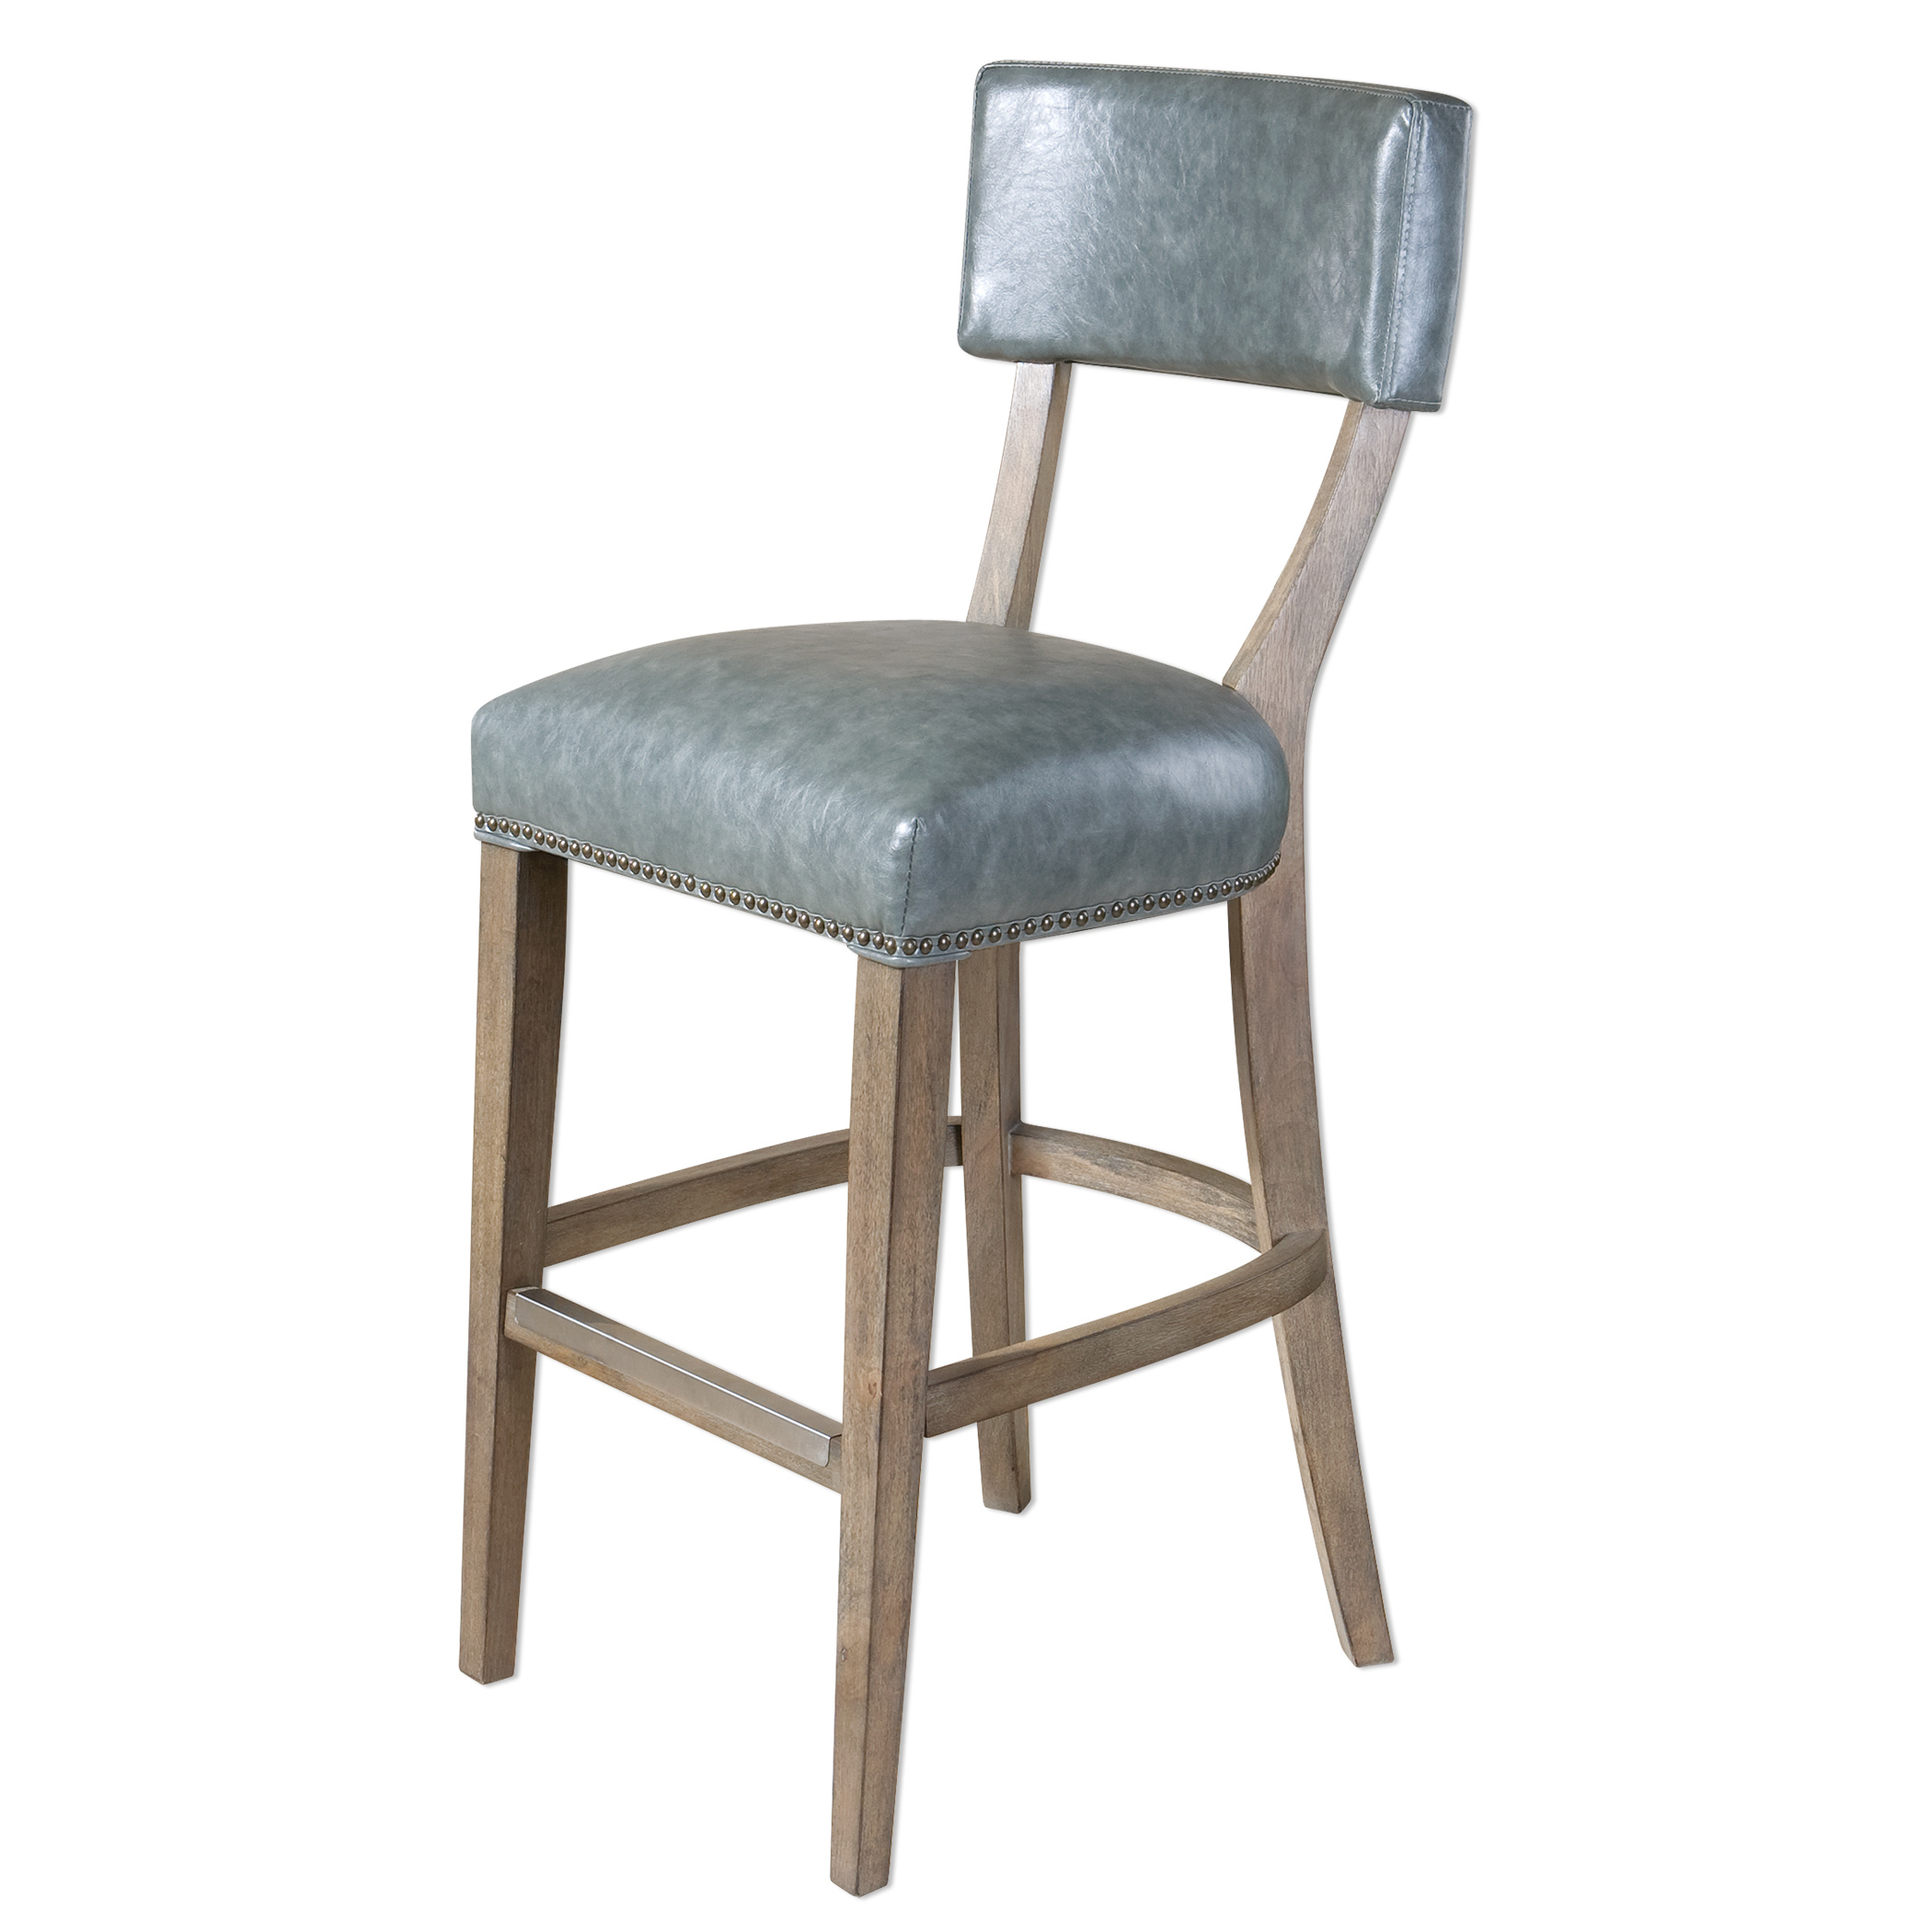 Uttermost Accent Furniture Lekan Stony Gray Bar Stool - Item Number: 23264